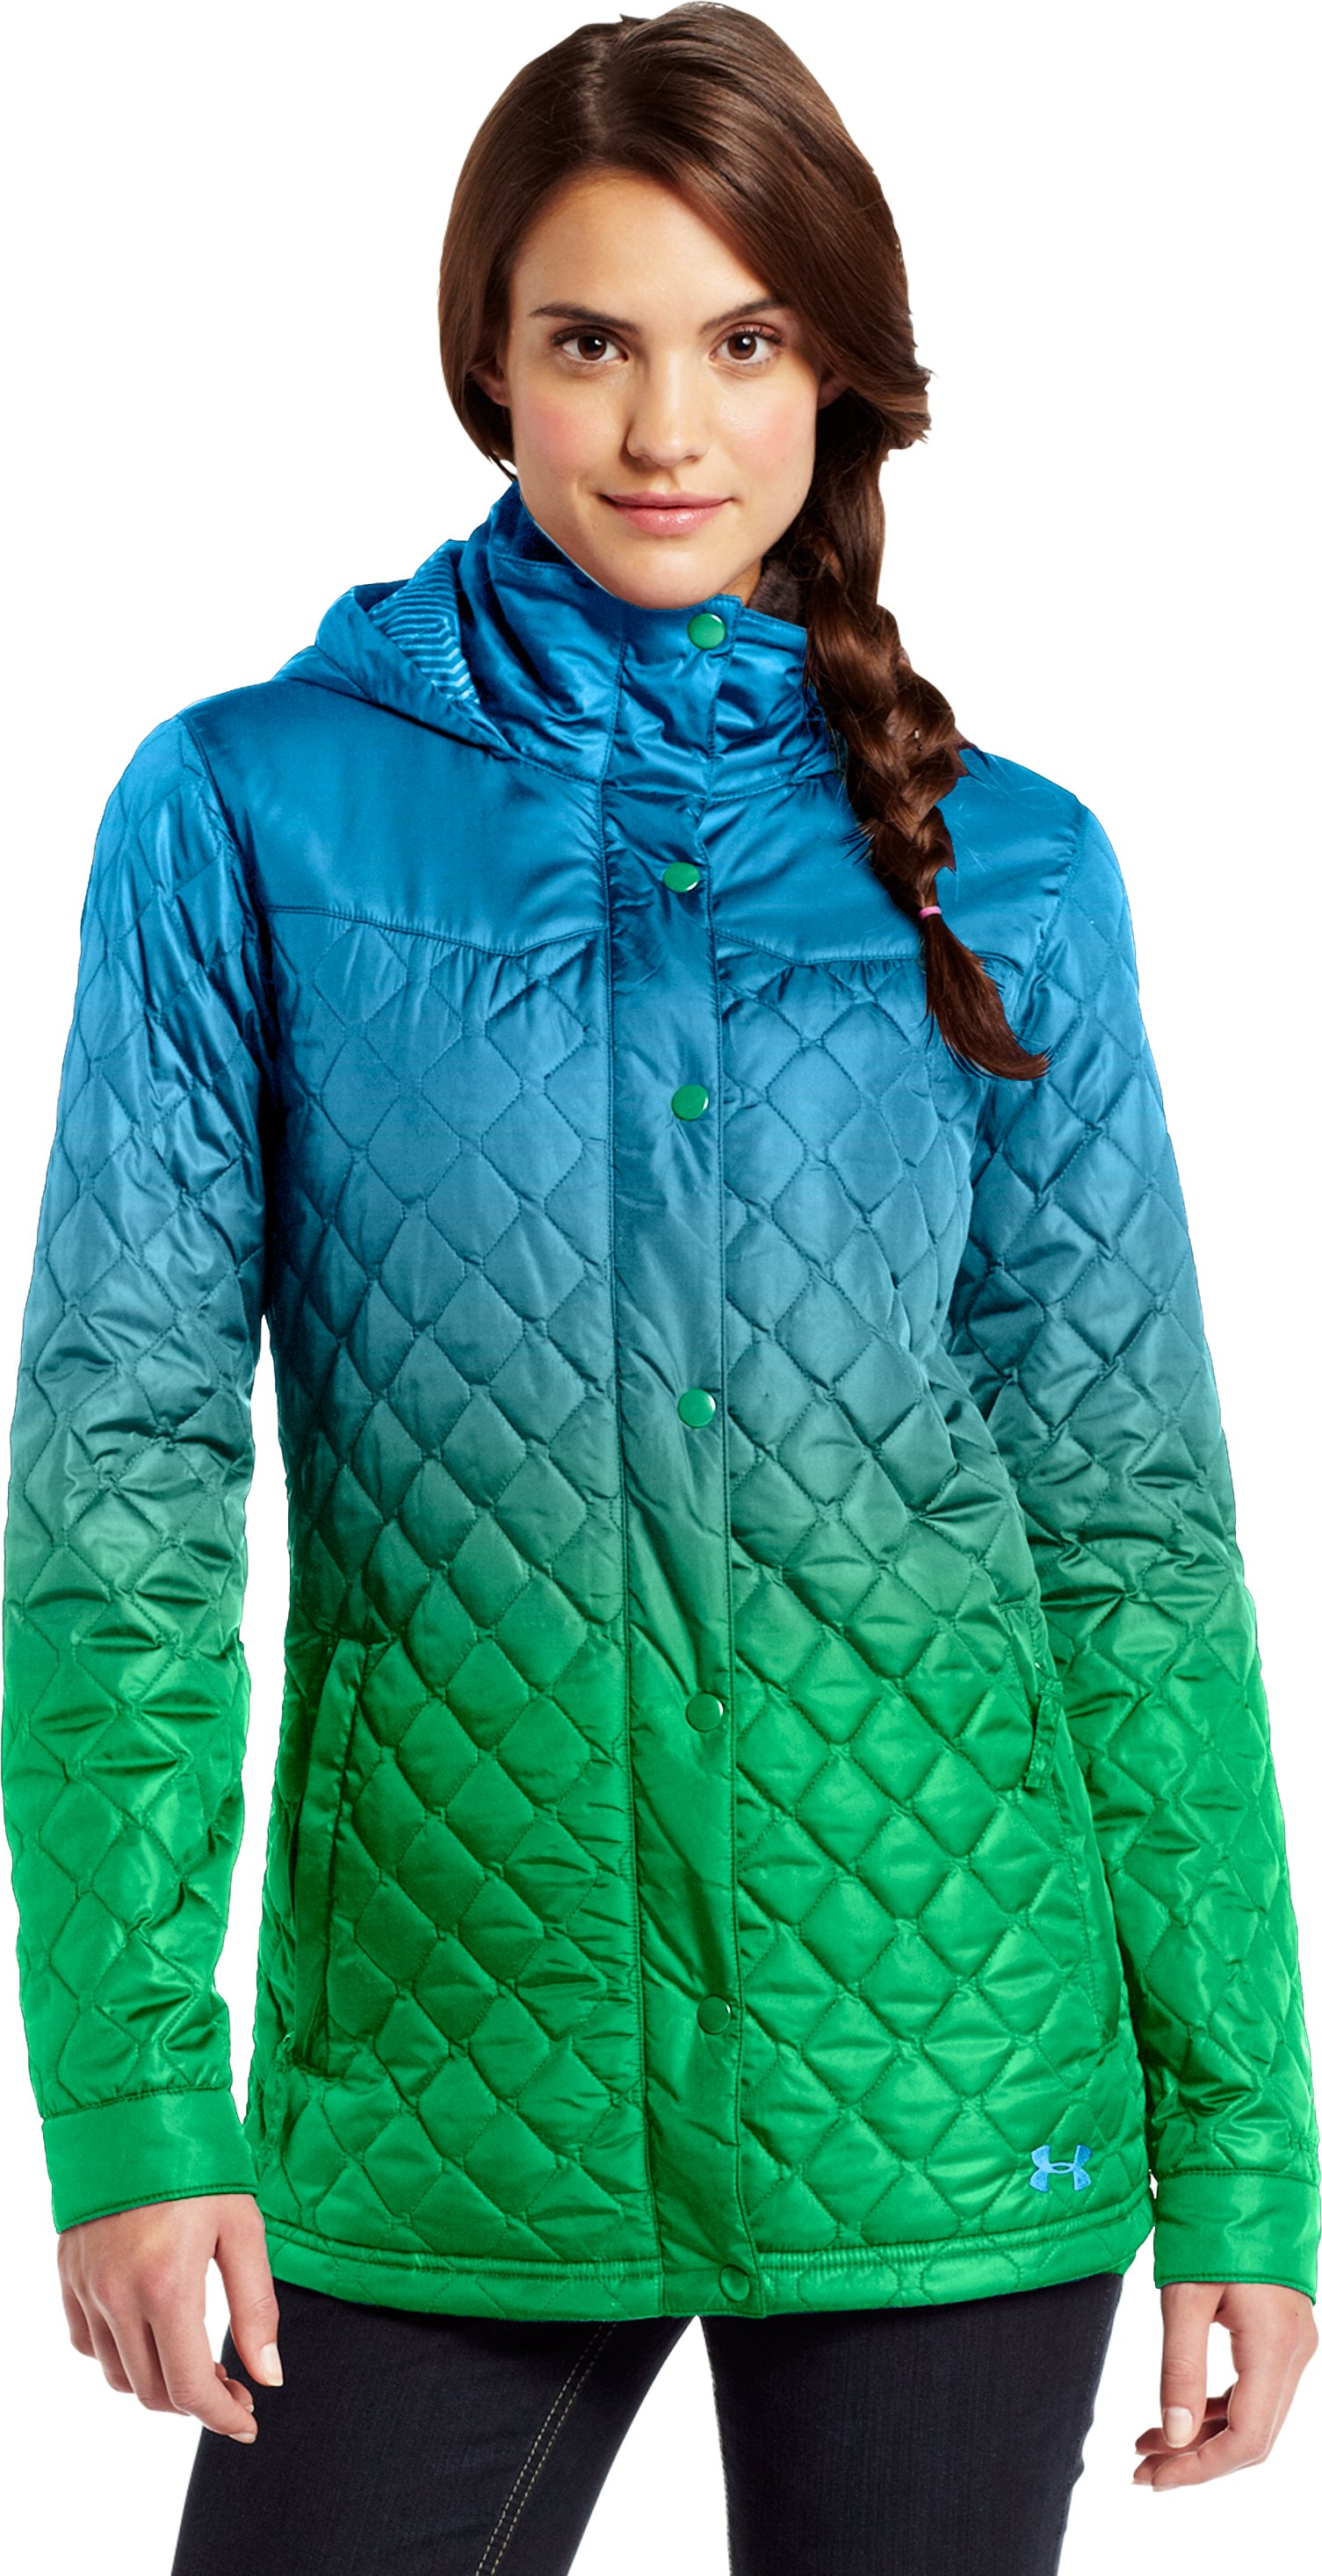 Women's ColdGear® Infrared Alpinlite Parka, Crown Jewel, Front